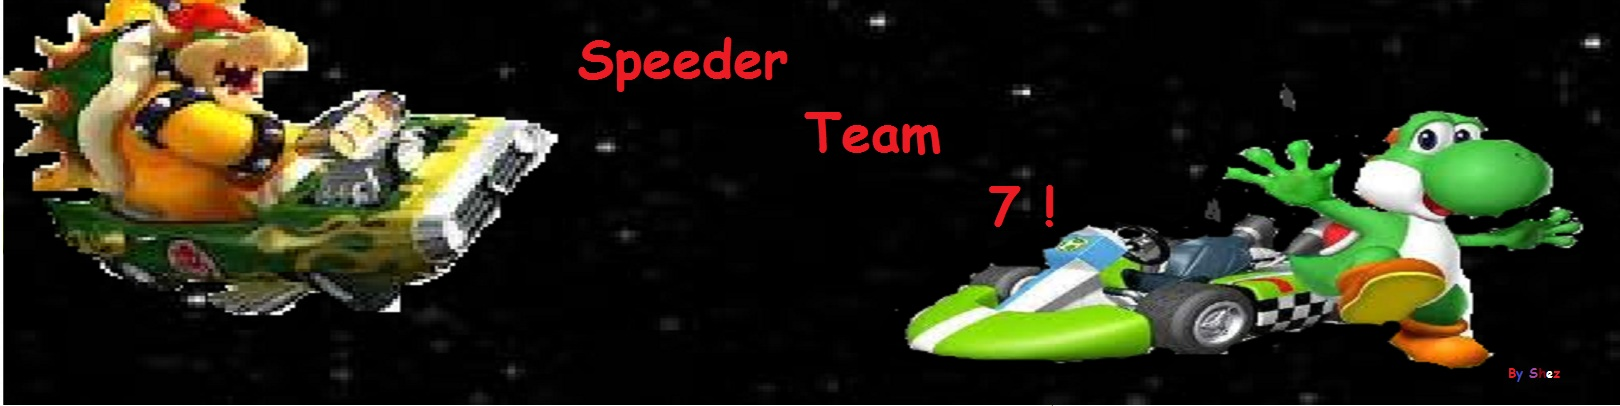 speeder team 7 Index du Forum